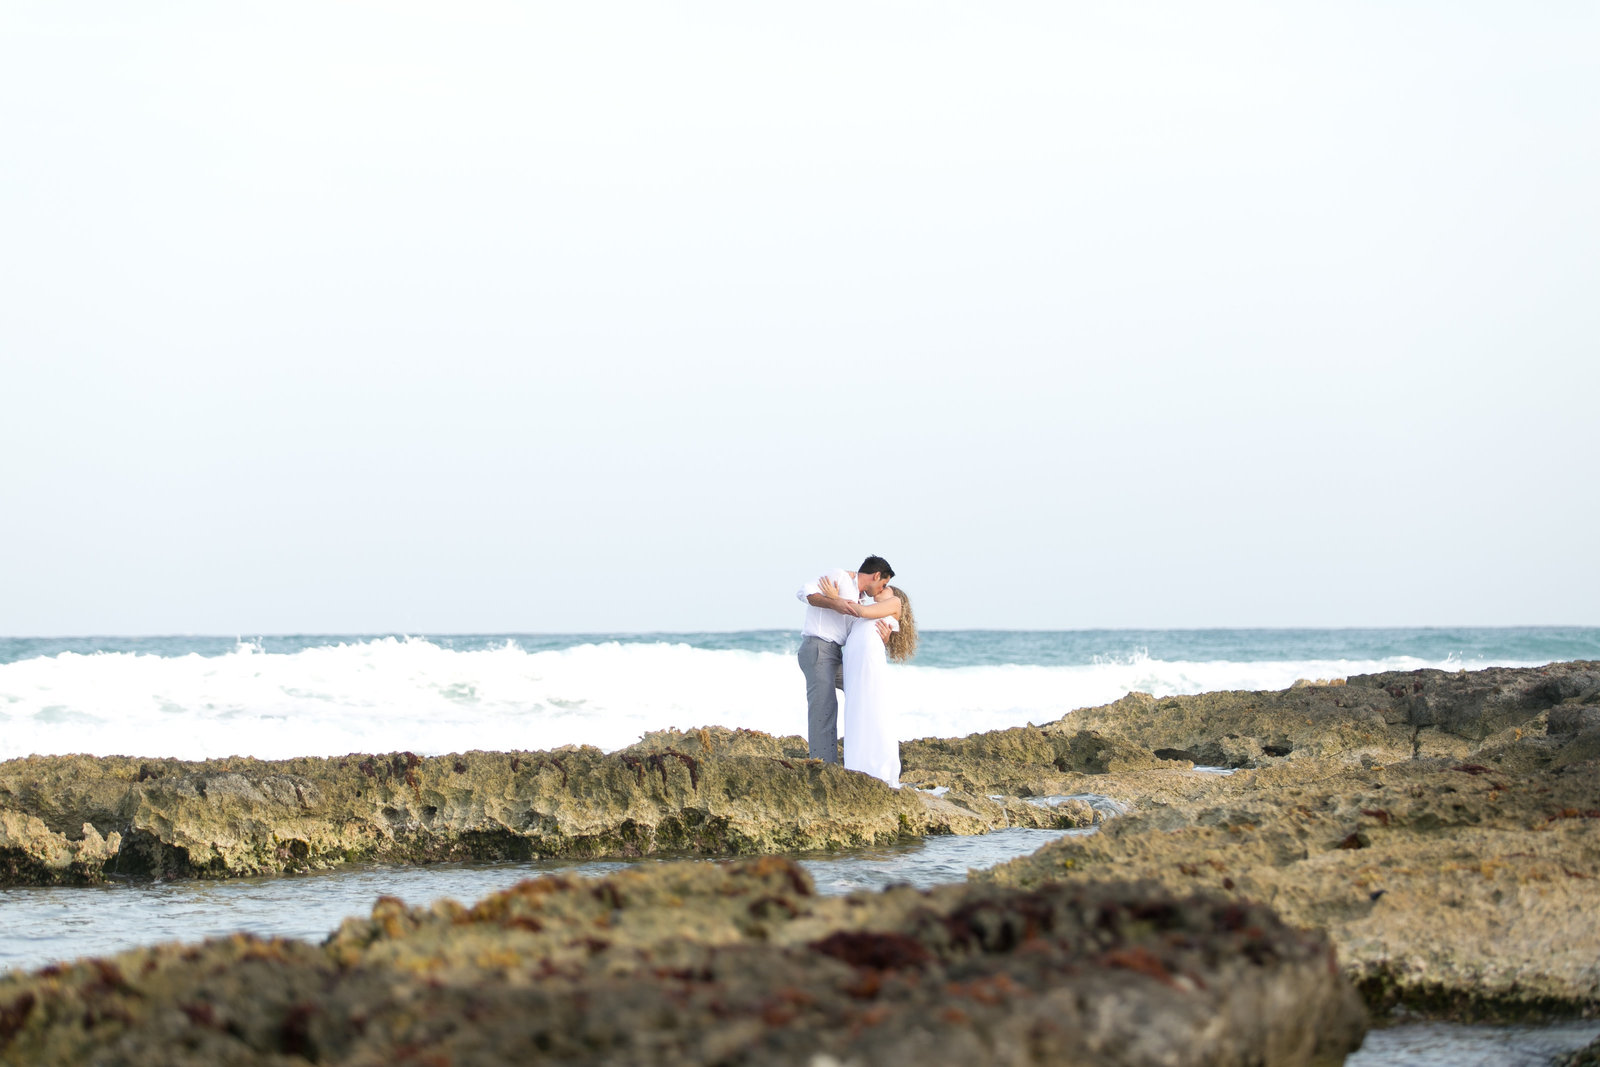 Destination Wedding Photographer Jess Collins Photography does Trash The Dress photo session at Grand Palladium Kantenah with bride and groom